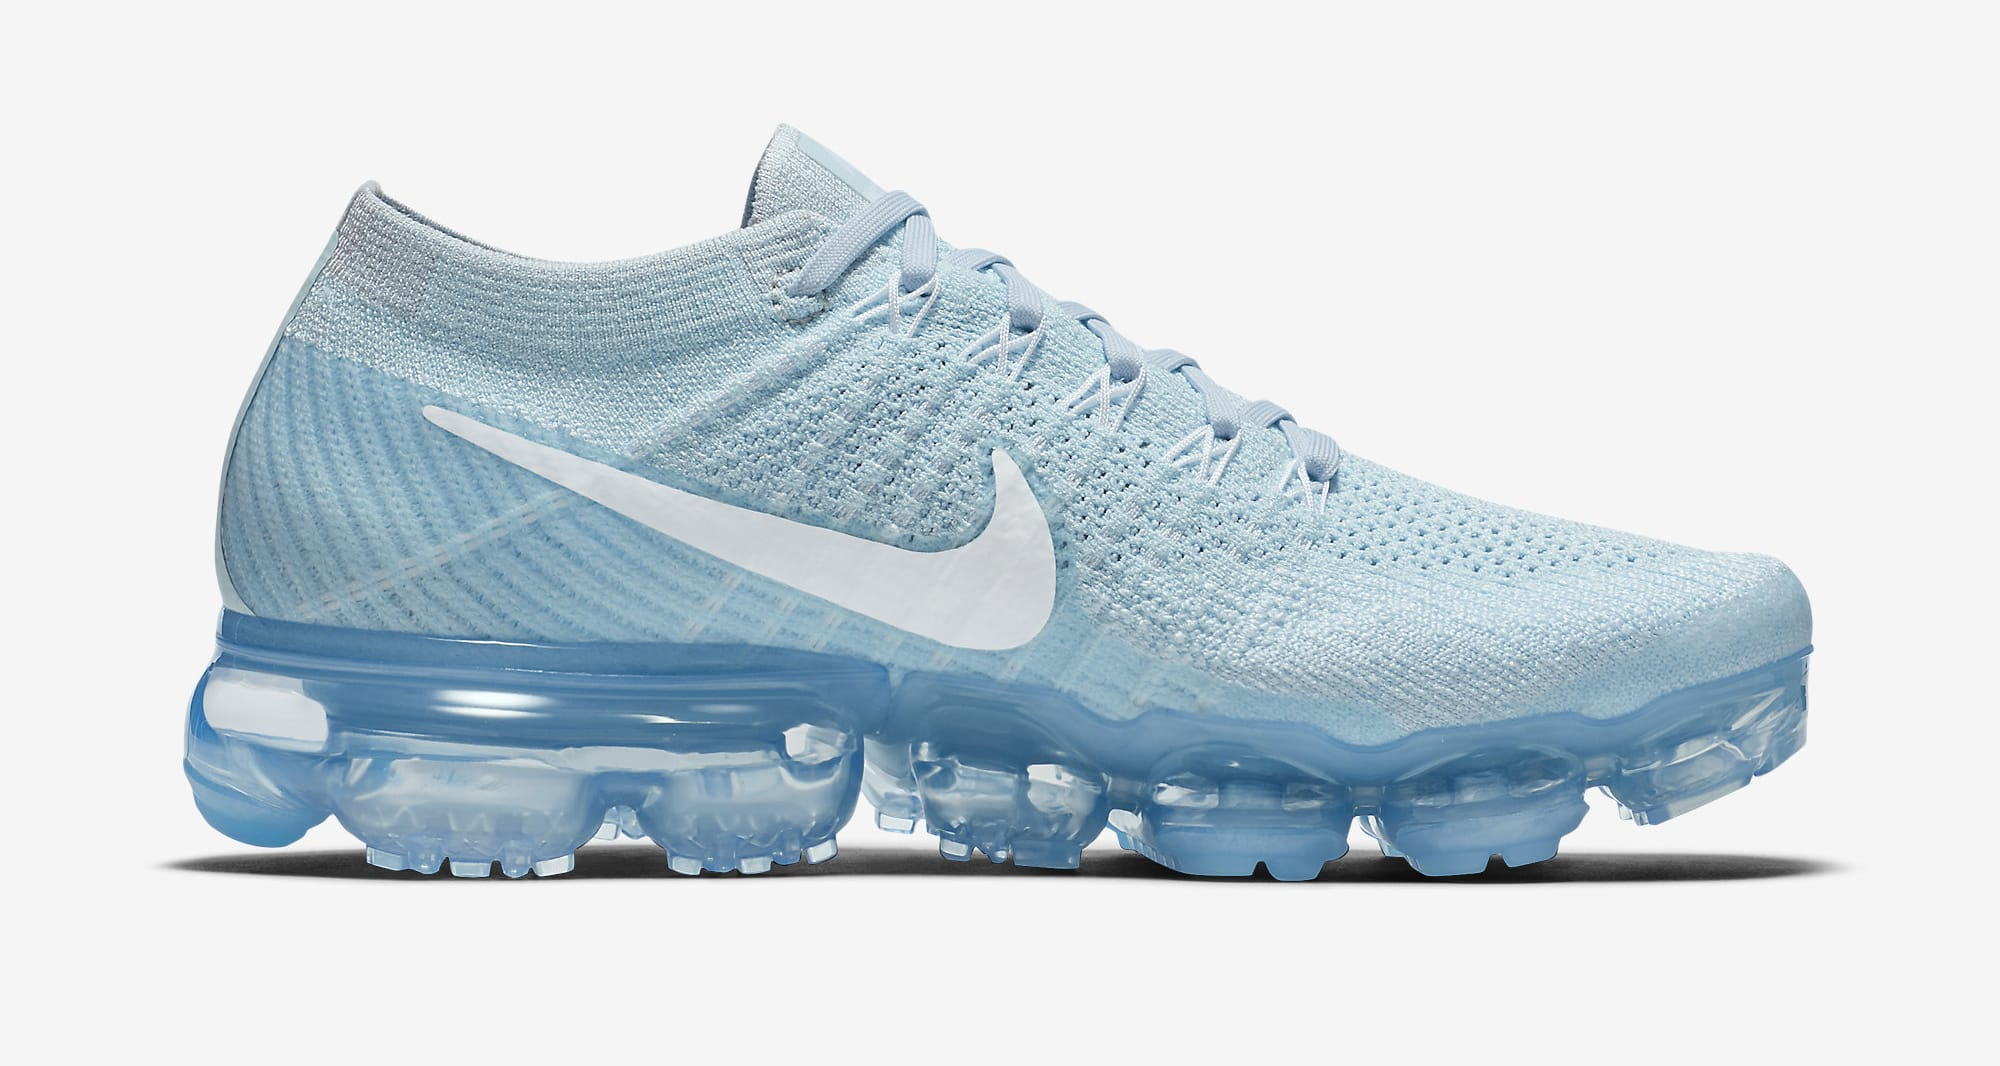 new product aadeb 897af Buy Nike Cheap Air Vapormax Flyknit Running Shoes Sale Online 2018